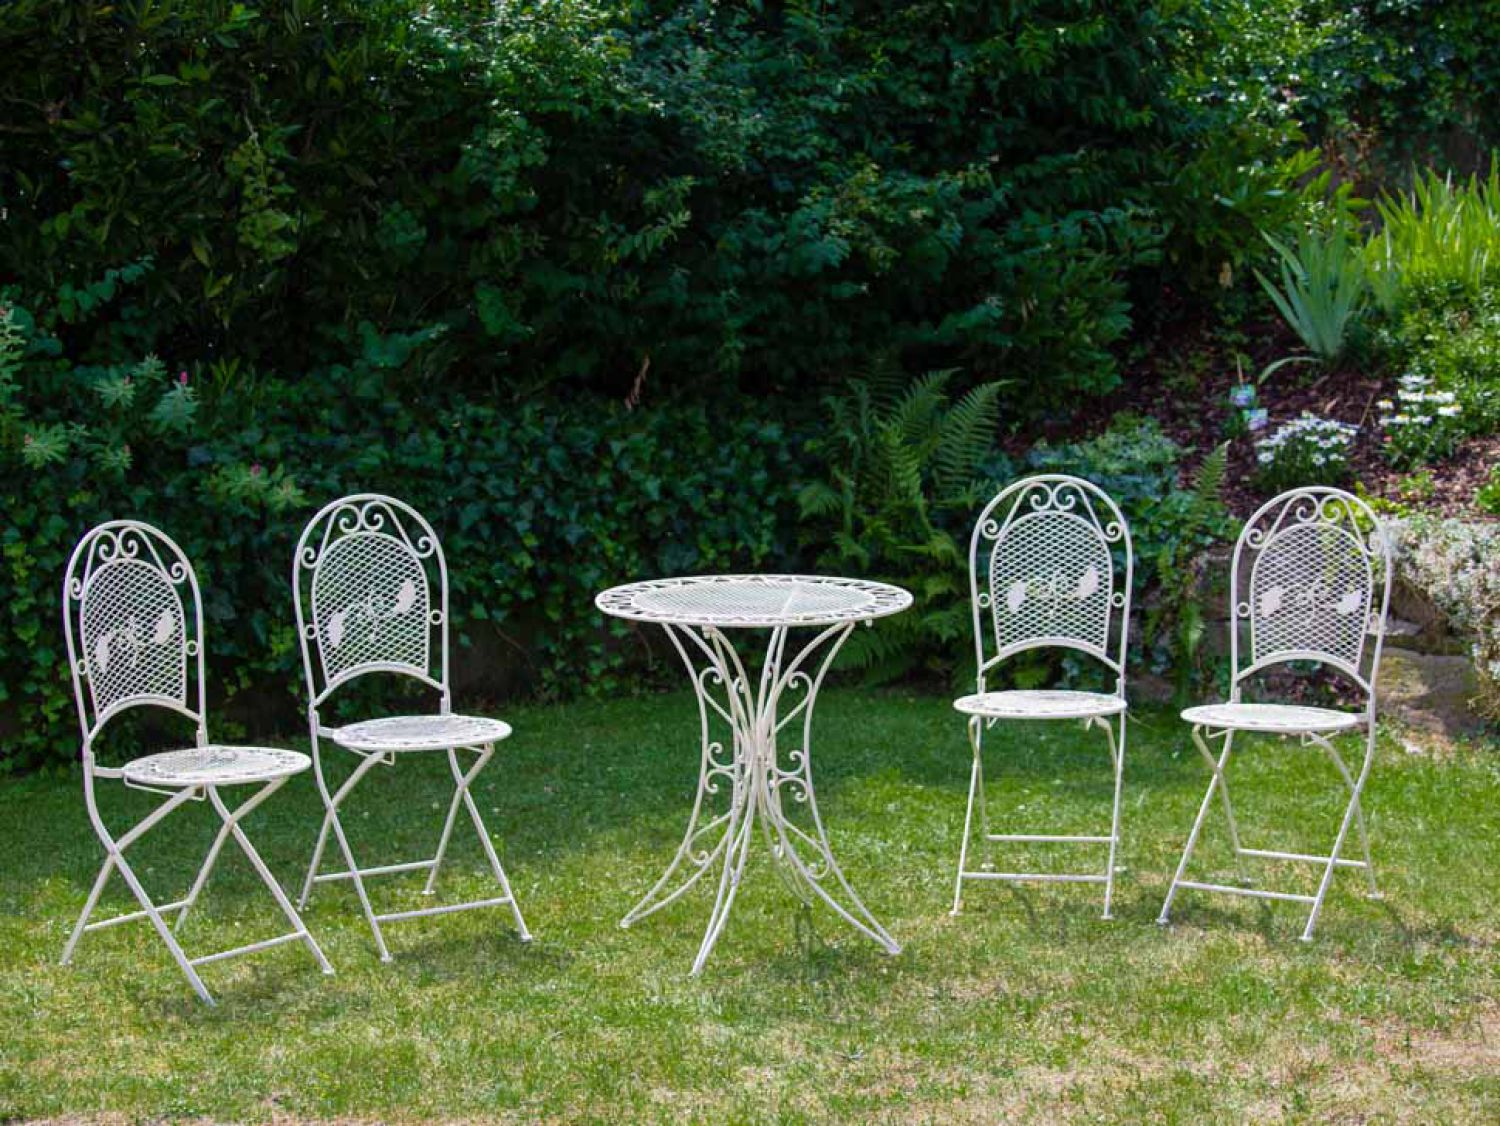 set garnitur garten tisch und 4 st hle eisen gartenm bel antik stil creme weiss ebay. Black Bedroom Furniture Sets. Home Design Ideas